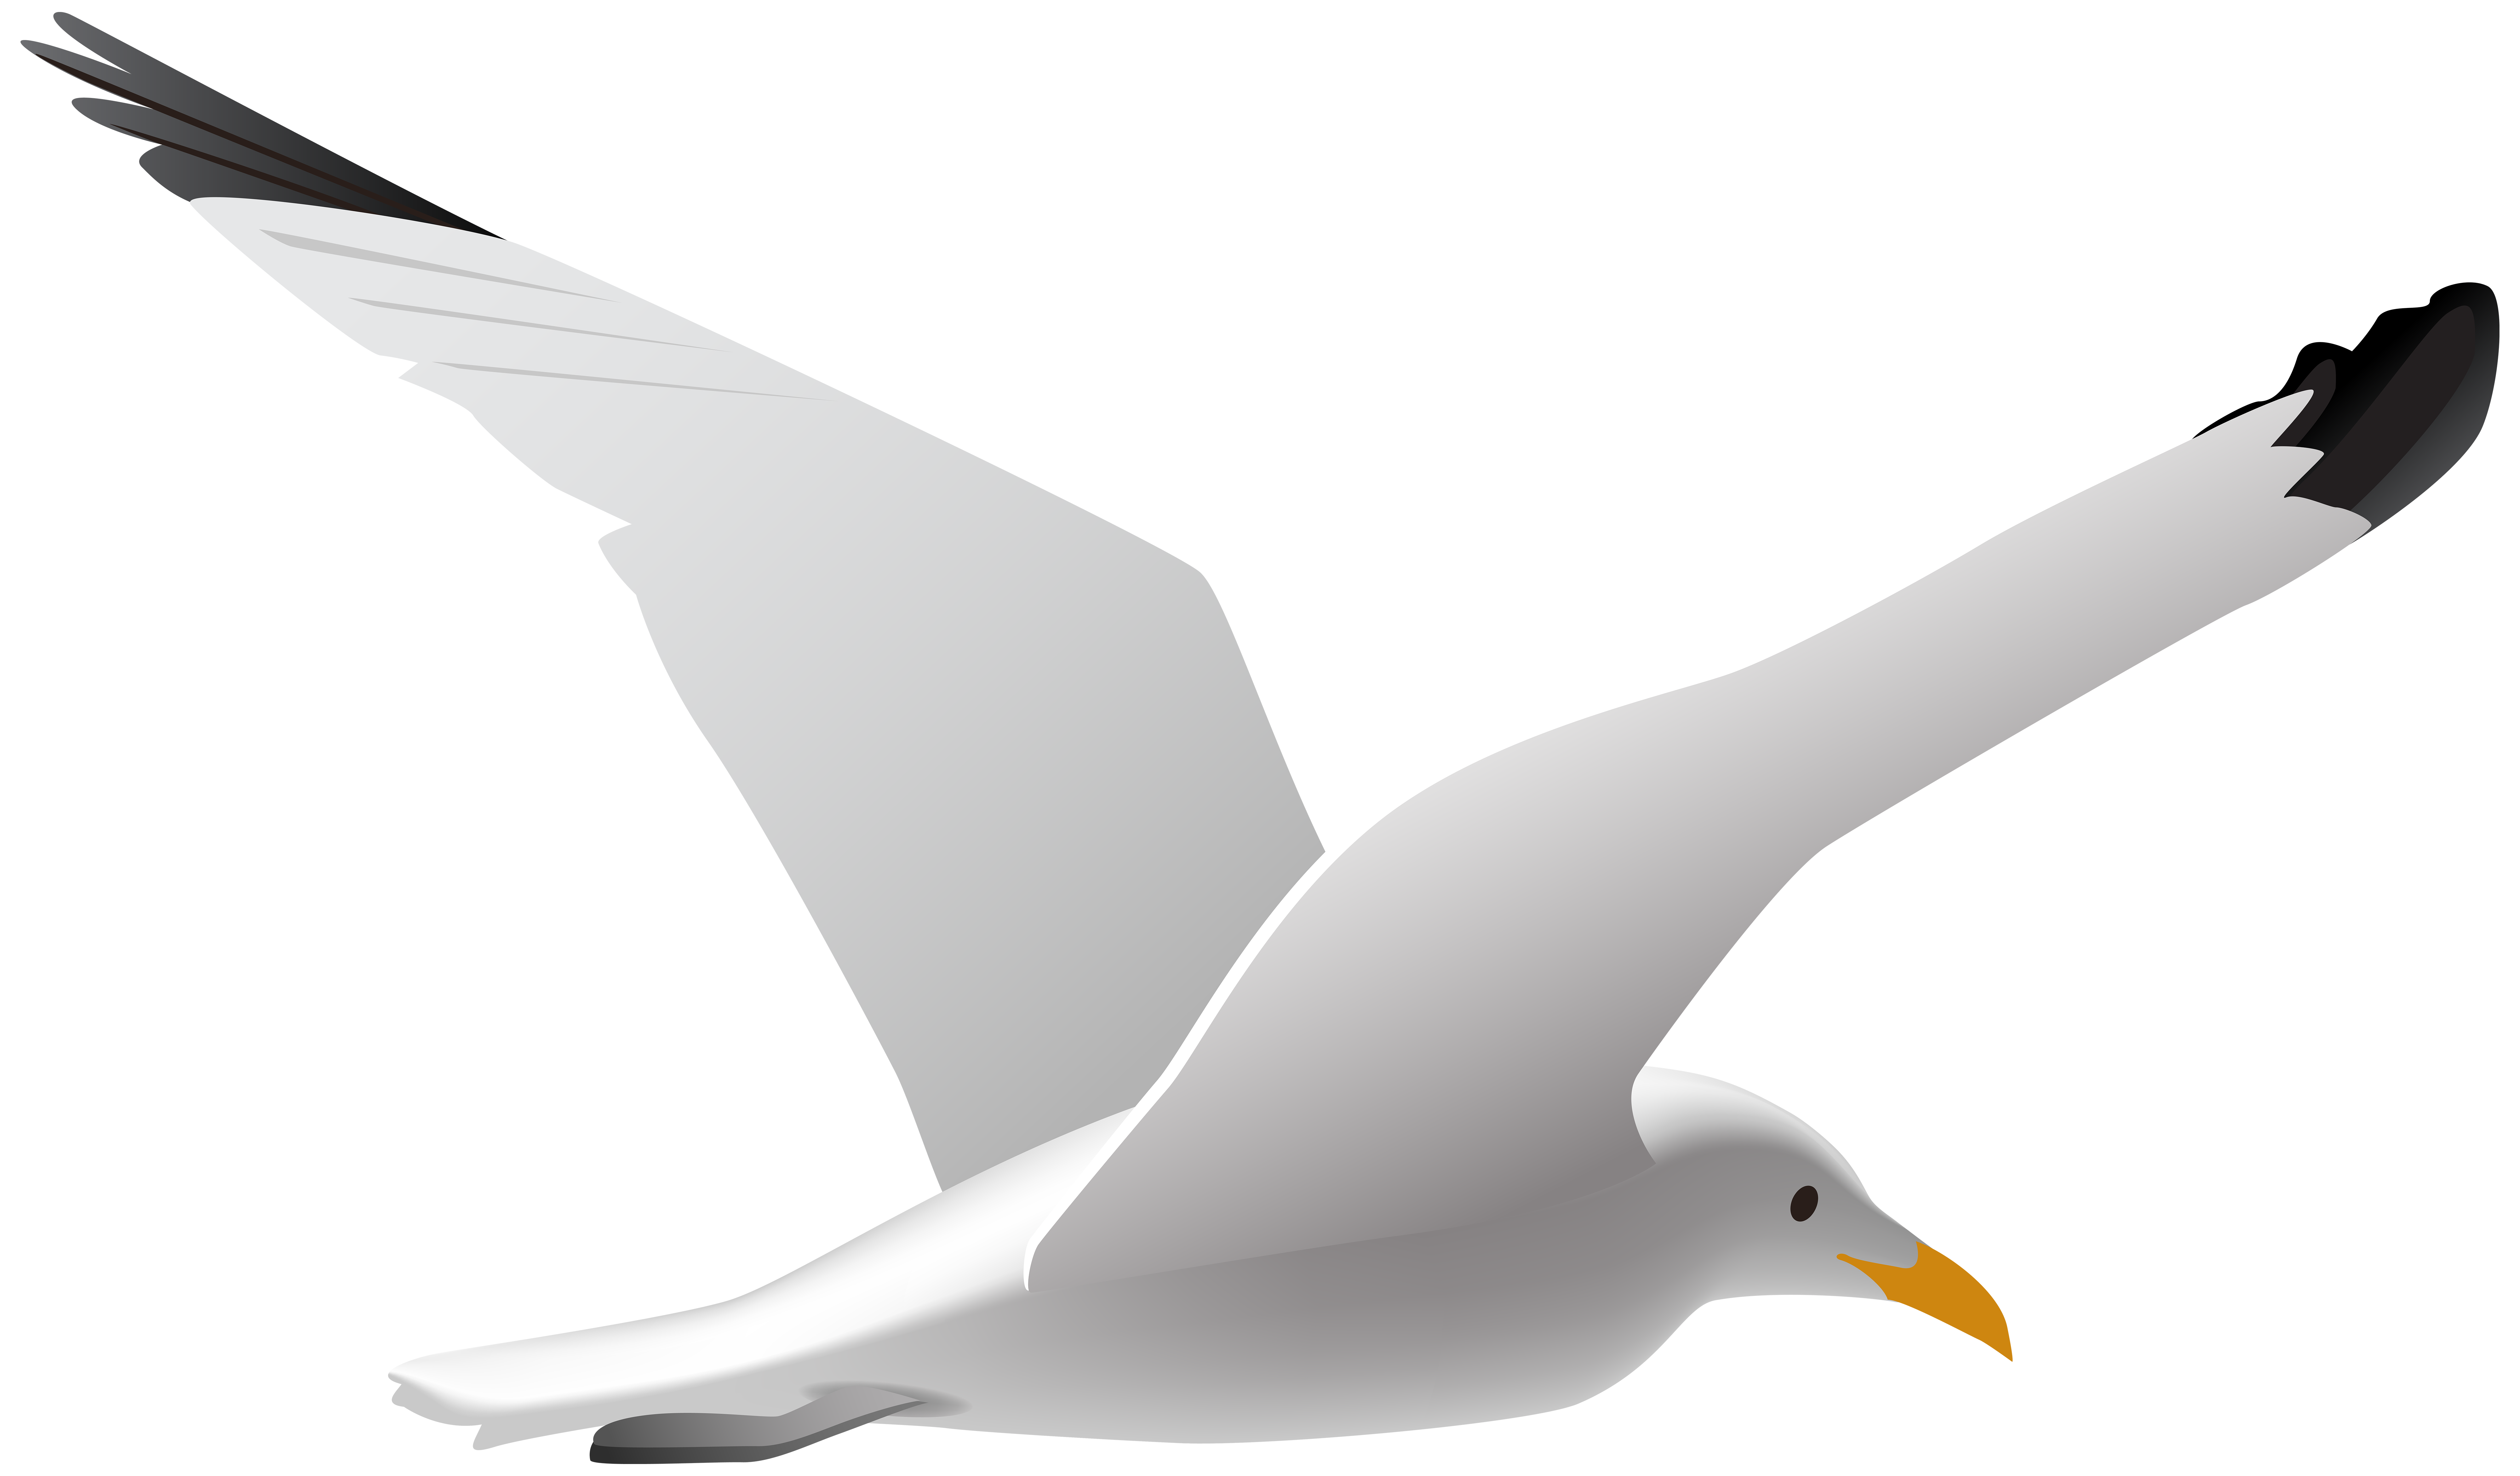 Free clipart downloads seagulls vector library download Seagull PNG Clip Art Image | Gallery Yopriceville - High-Quality ... vector library download